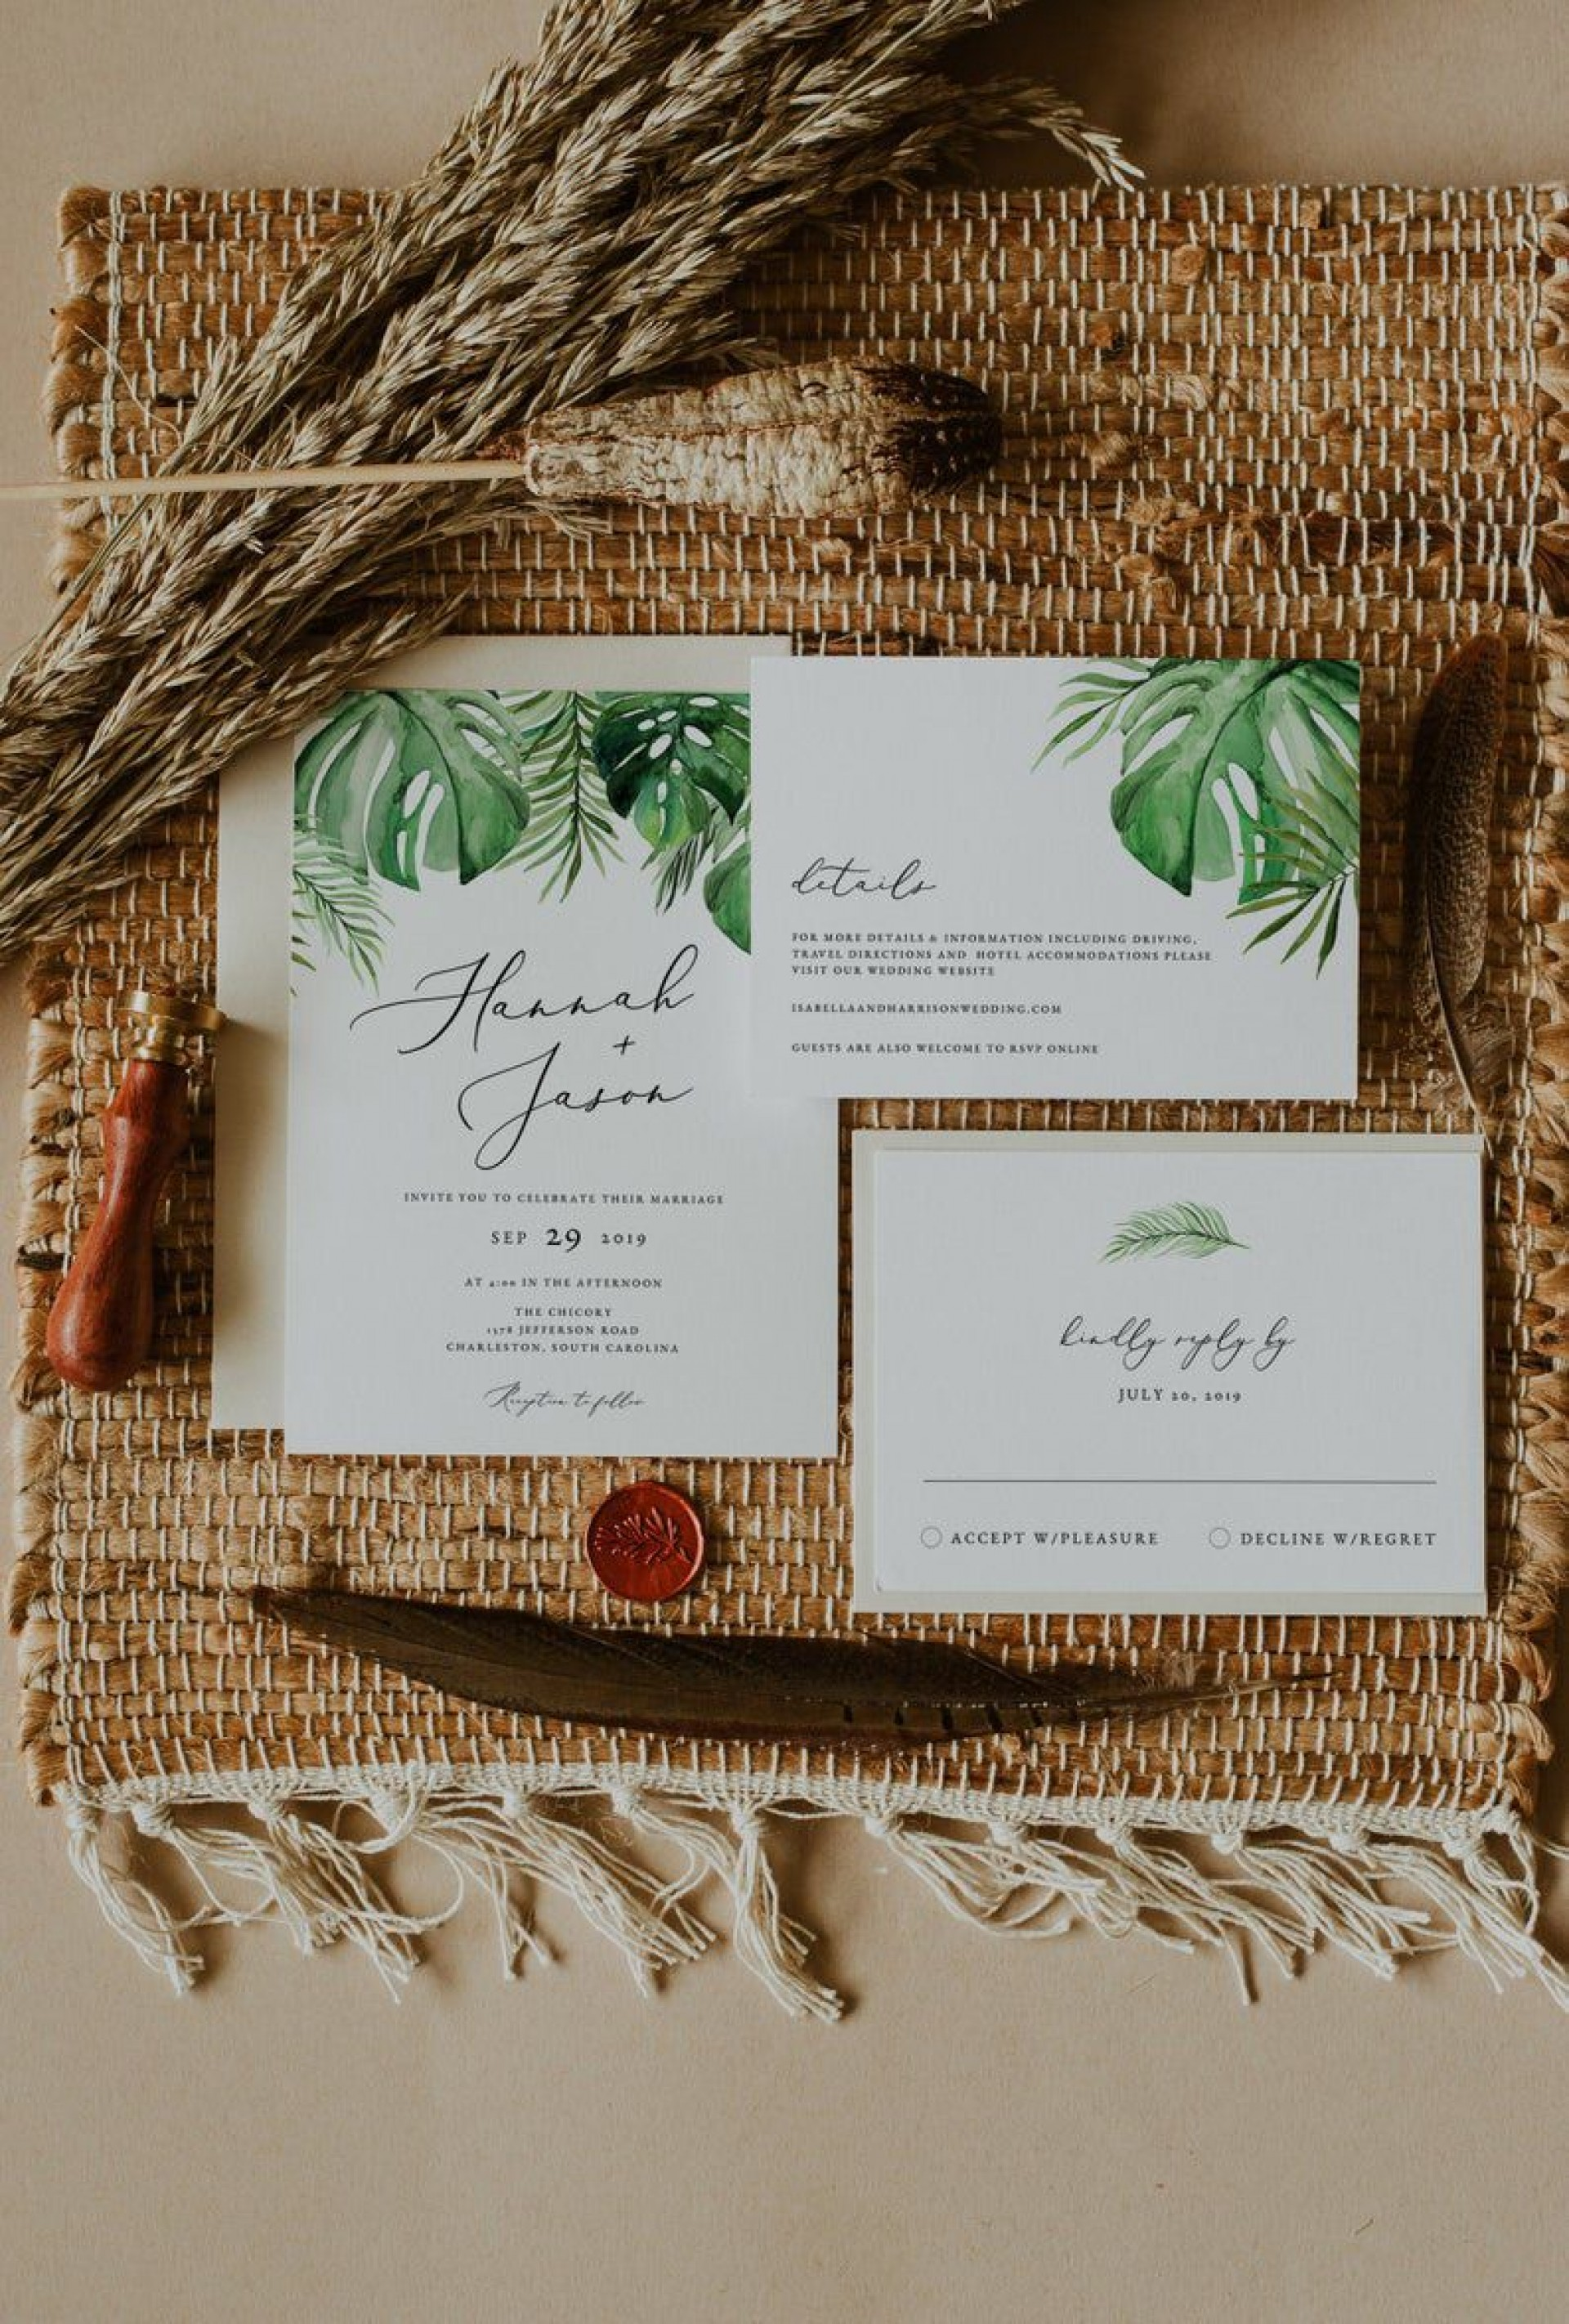 008 Archaicawful Beach Wedding Invitation Template Concept  Templates Free Download For Word1920